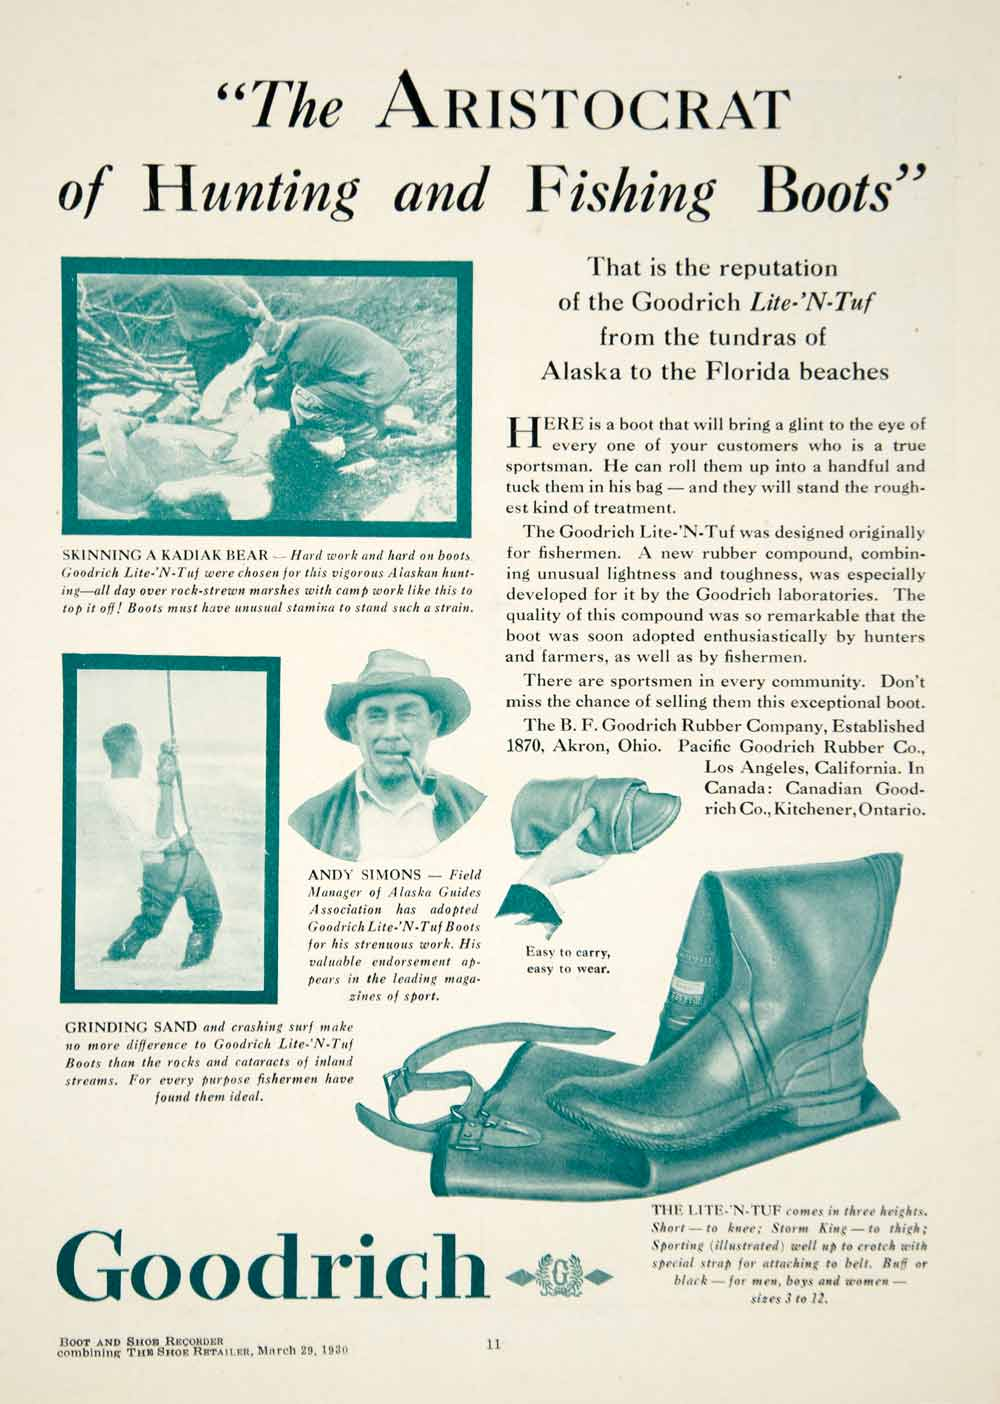 1930 Ad Goodrich Hunting Fishing Boots Men Fashion Shoe Andy Simons Lake YBSR1